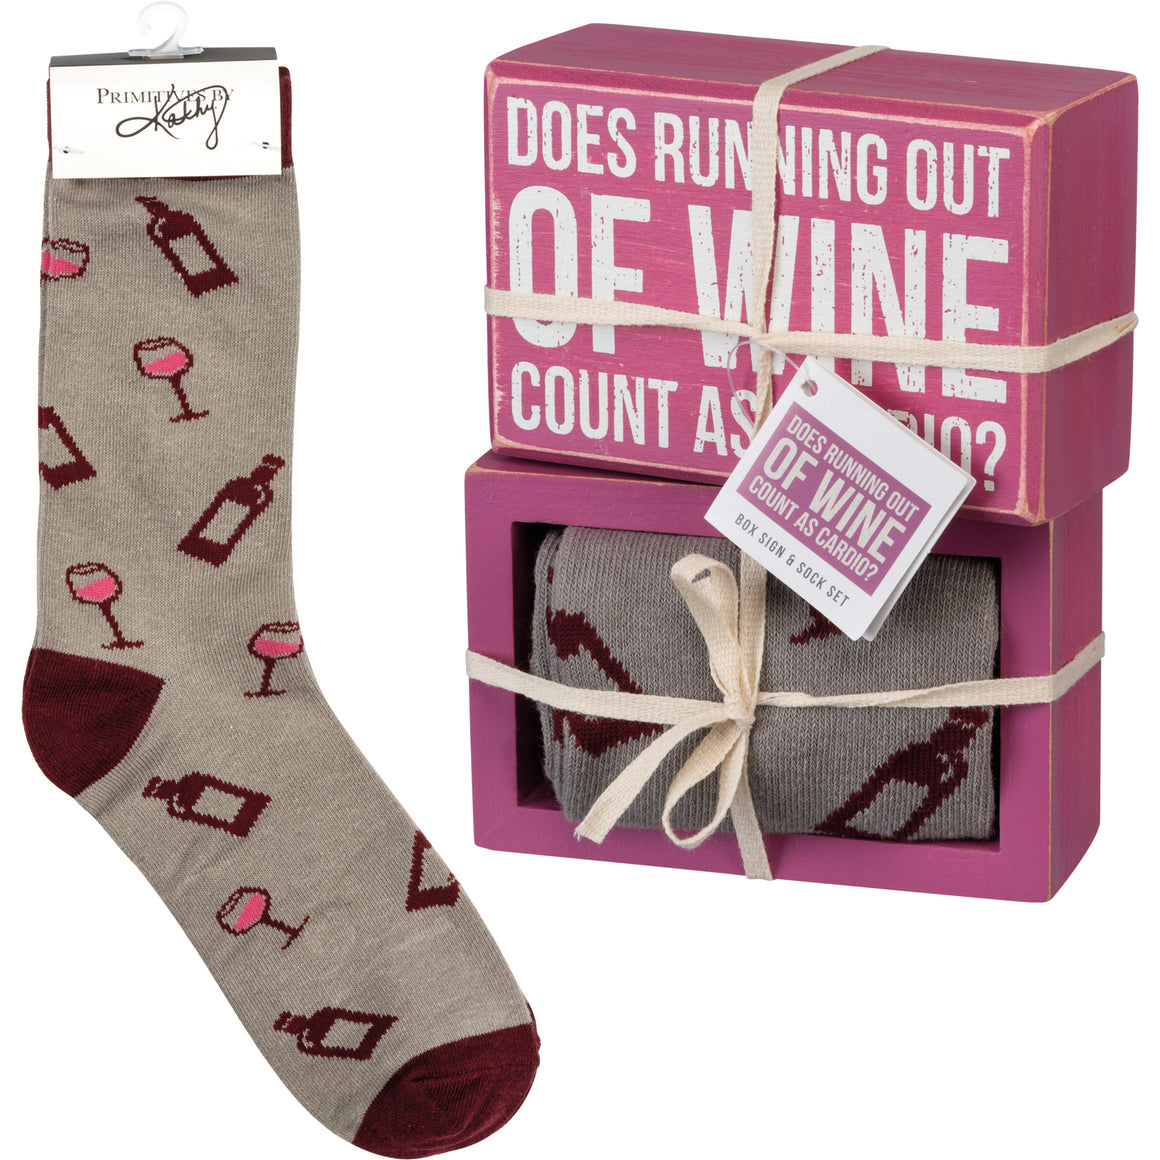 Does Running Out Of Wine Count As Cardio? Socks & Box Sign Gift Set